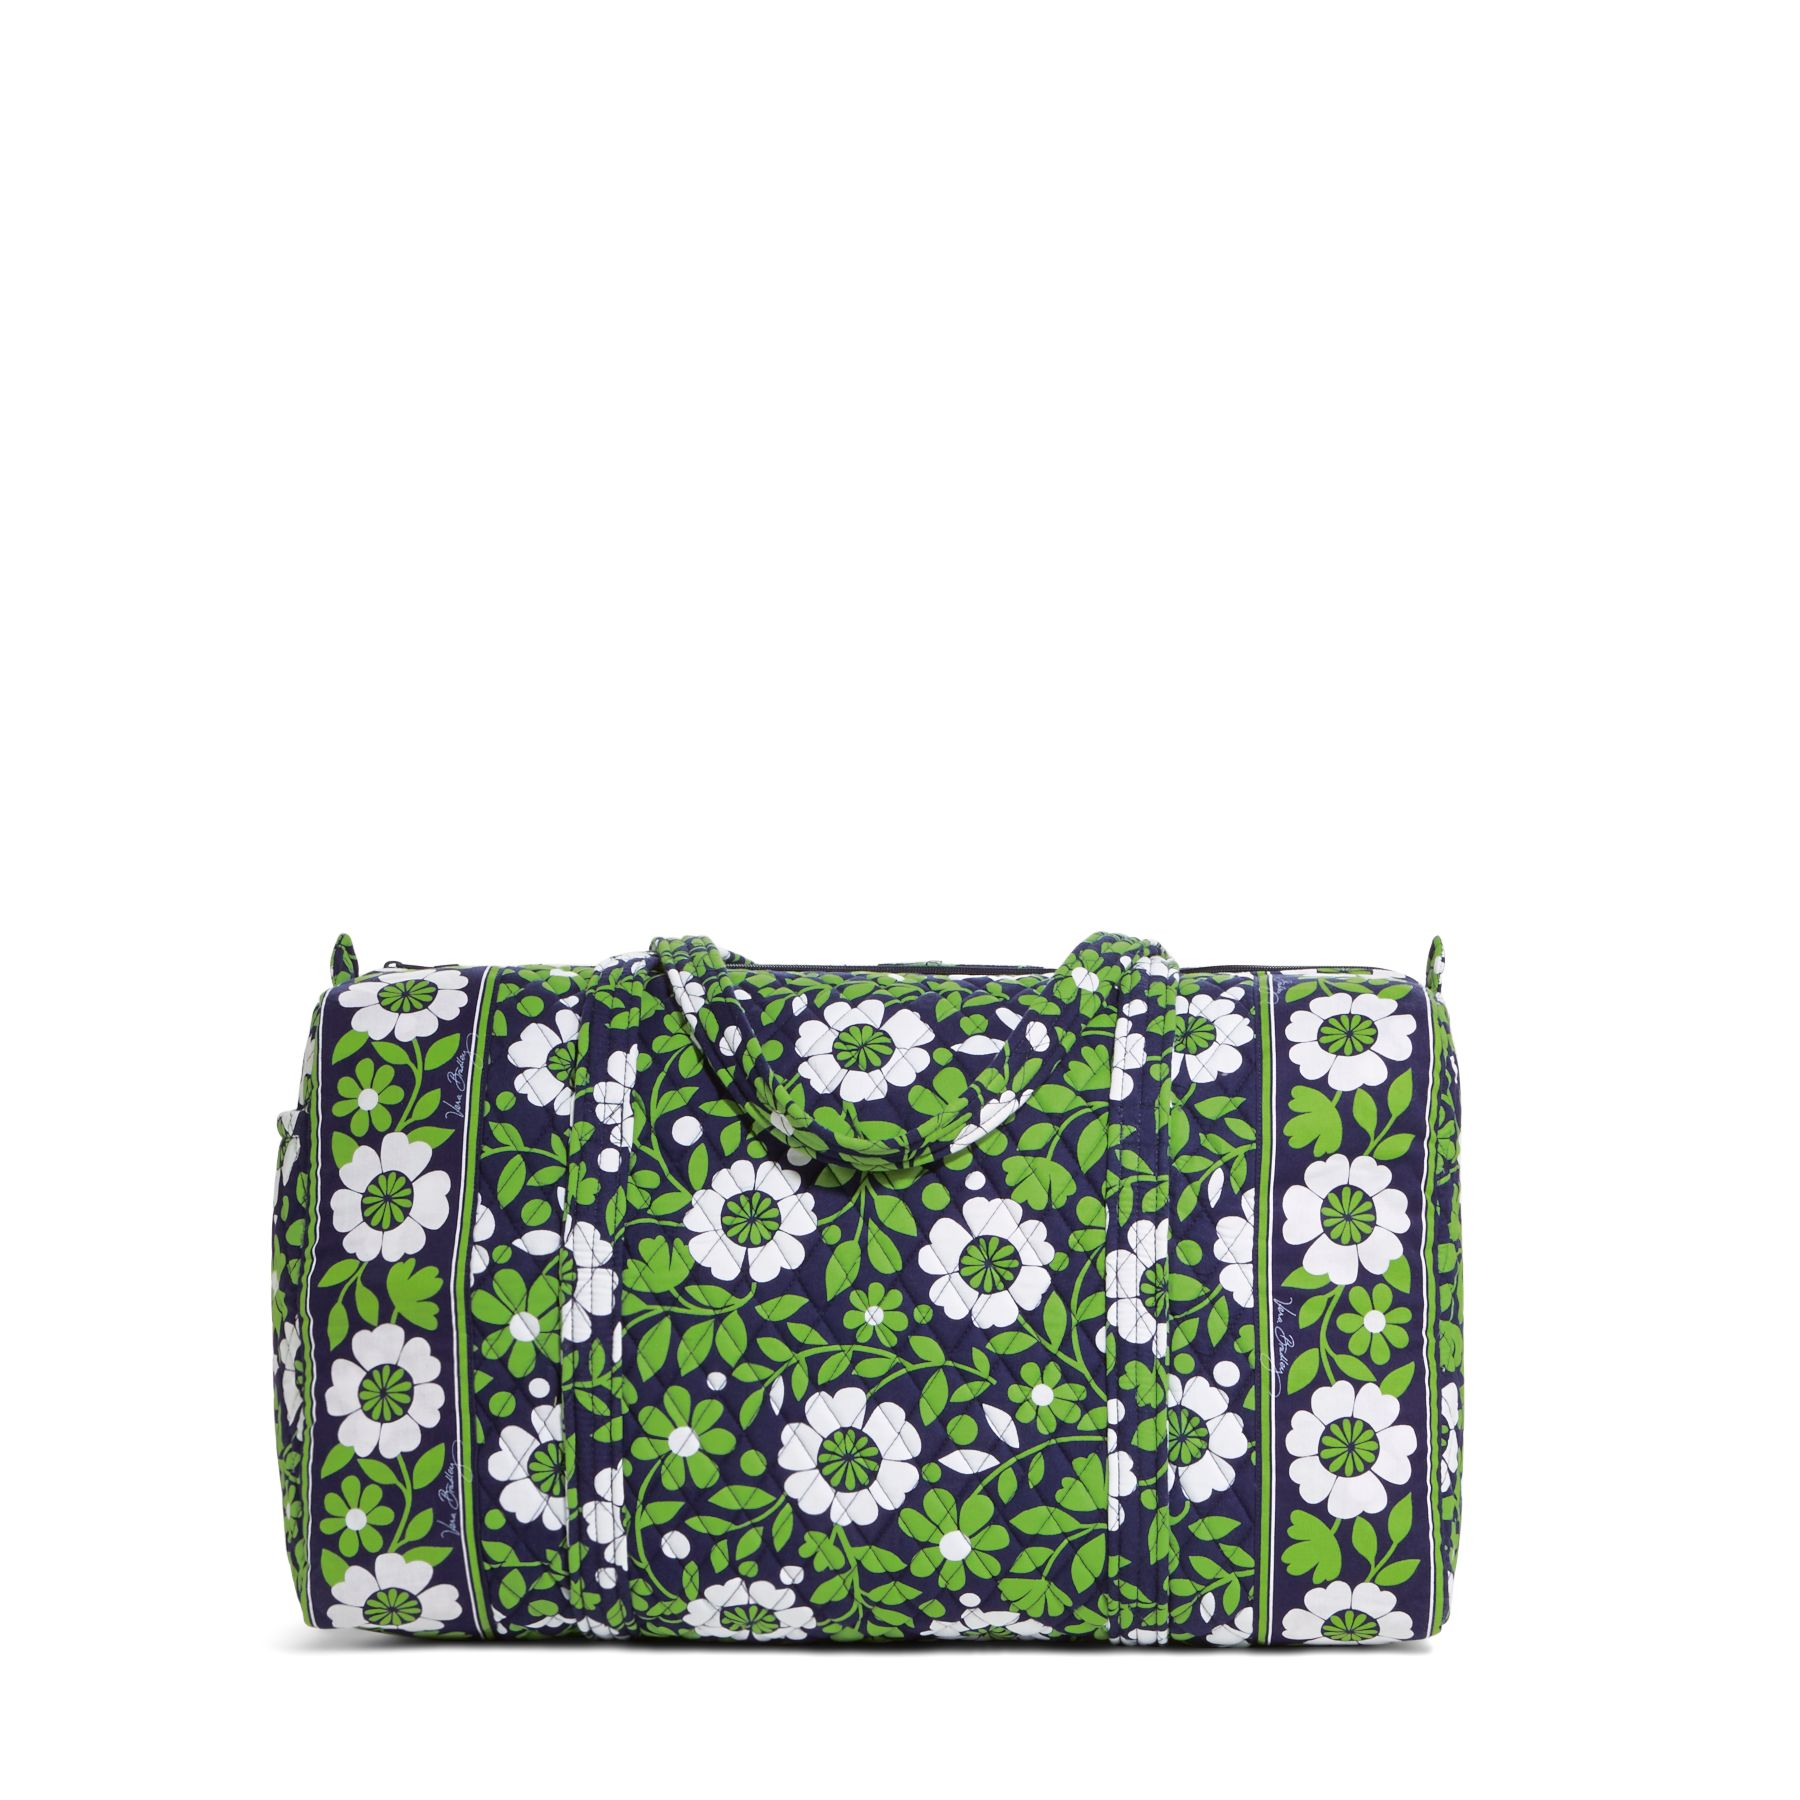 Vera Bradley Large Duffel Travel Bag in Lucky You